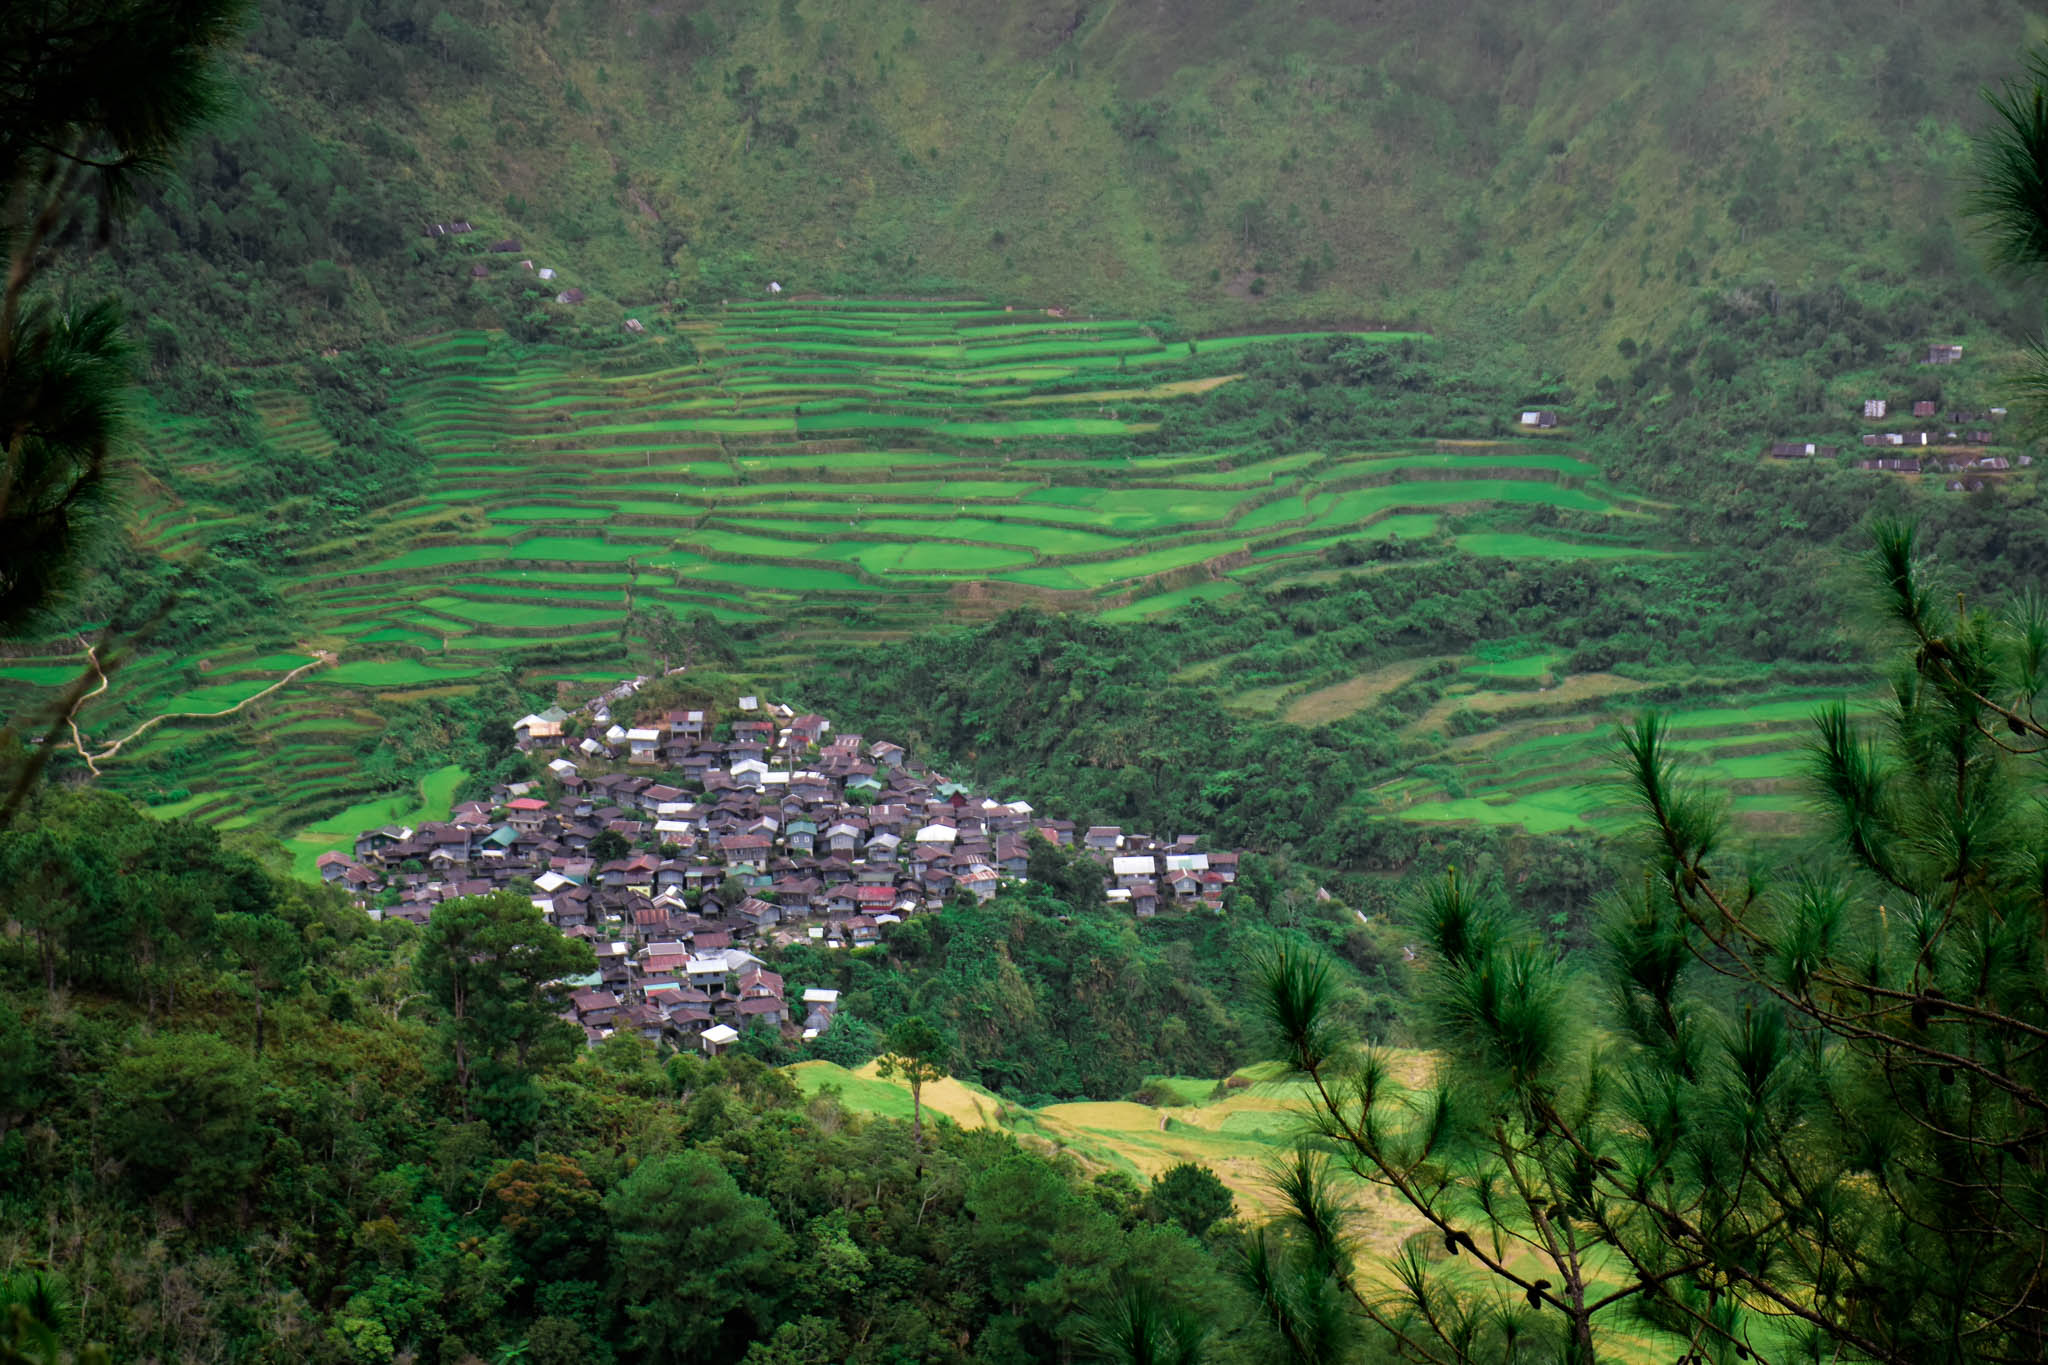 MALIGCONG RICE TERRACES 1 (1 of 1) - Copy